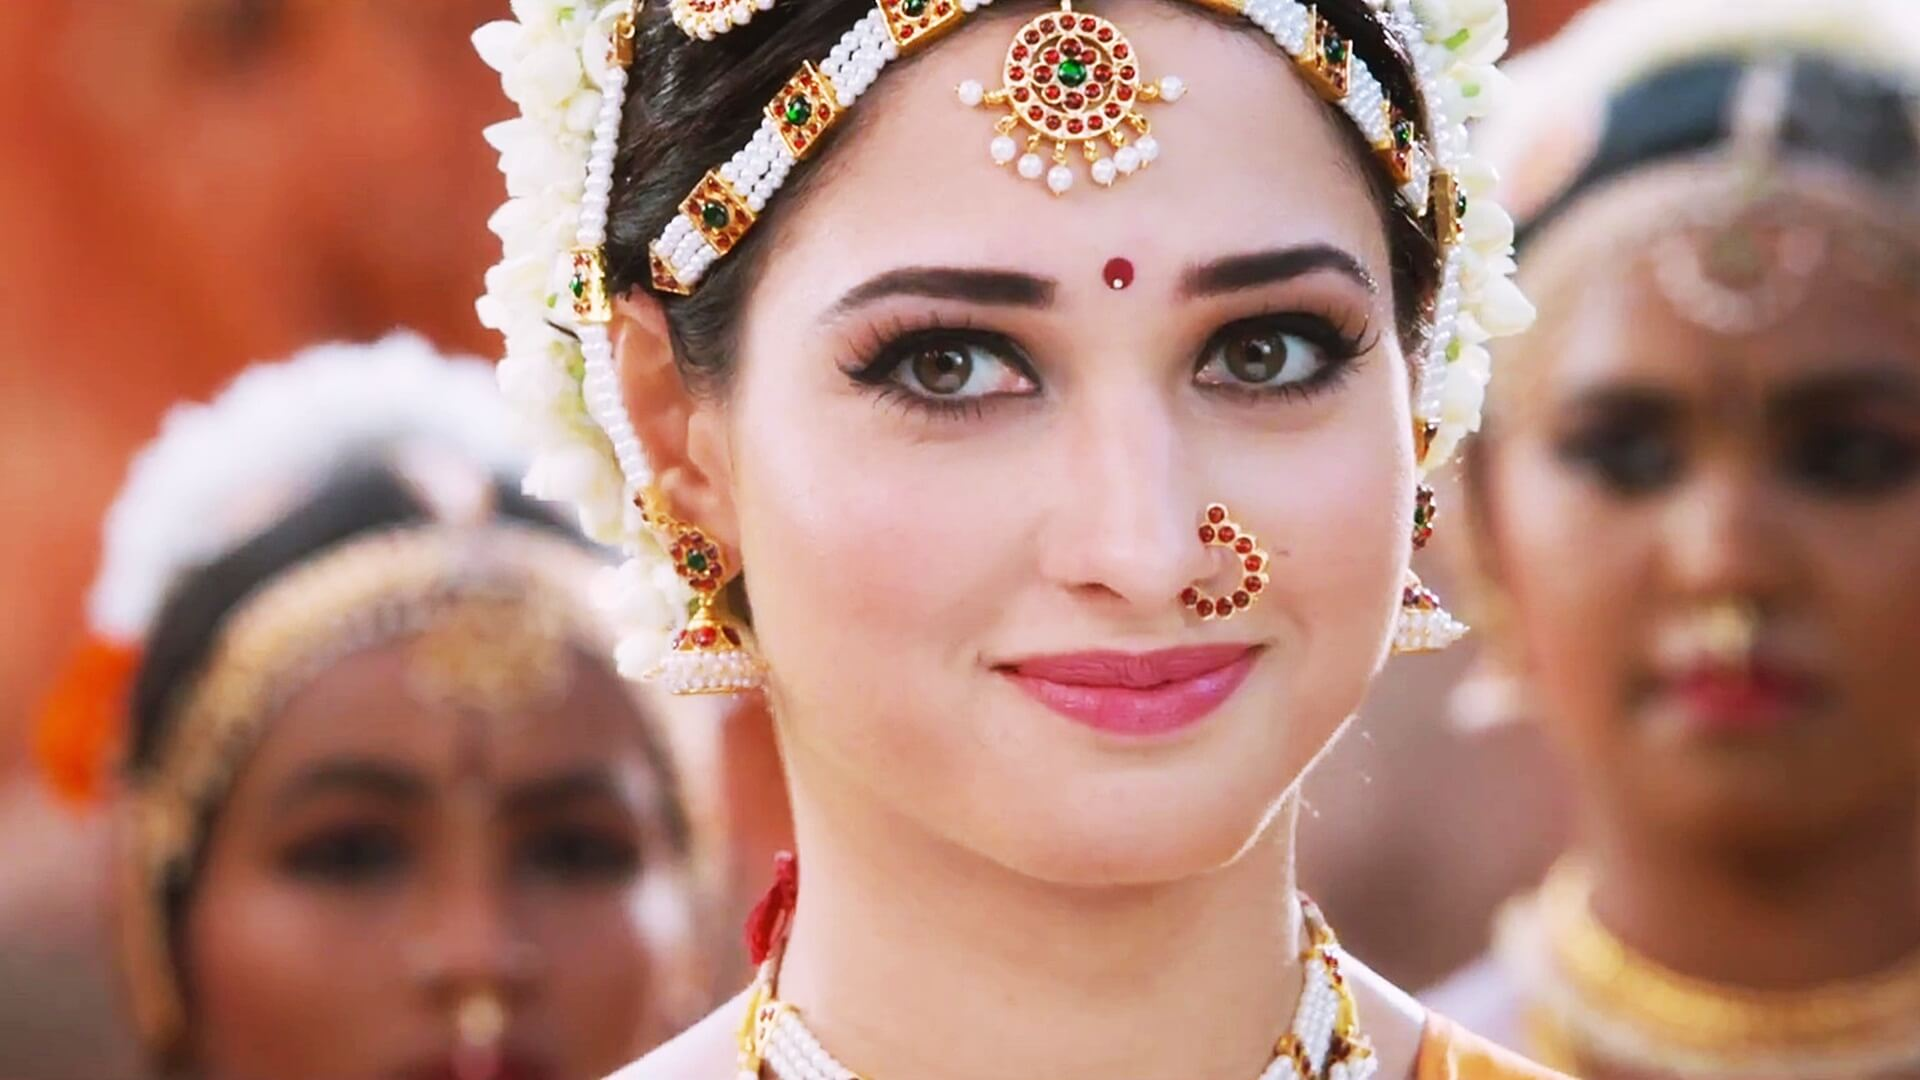 Tamannaah Bhatia Photos(images), Height, Biography, Movies, Date Of Birth, House, Details, Marriage, Boyfriend, Net Worth, Education, Instagram, Facebook, Twitter, Wiki, Imdb, Youtube (40)